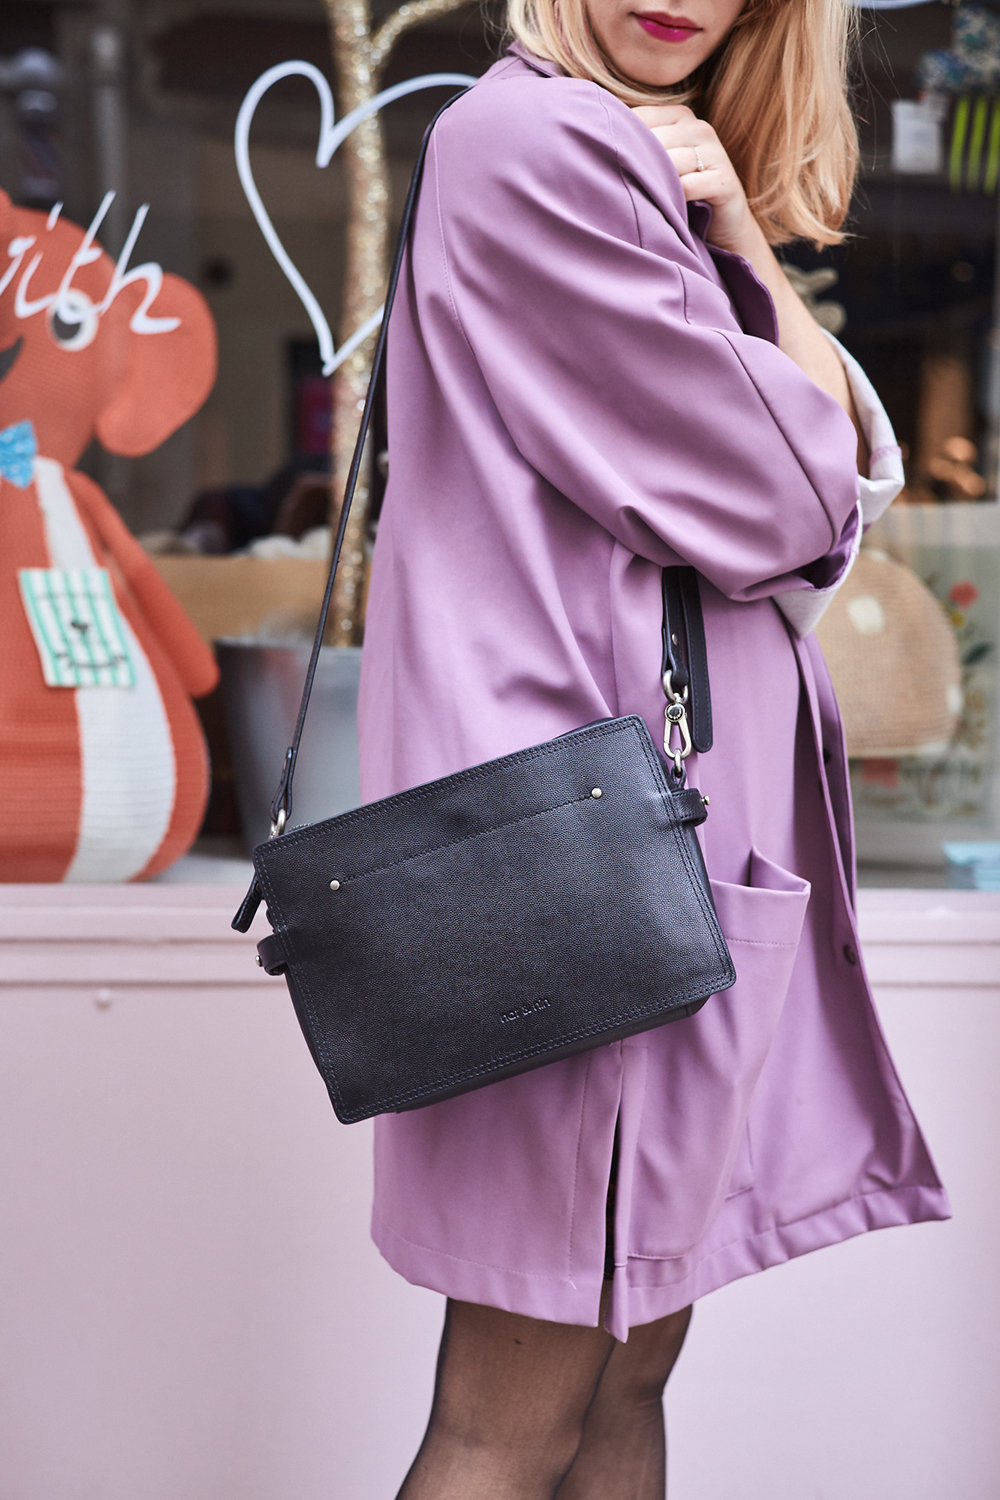 detail-streetstyle-pink-and-black